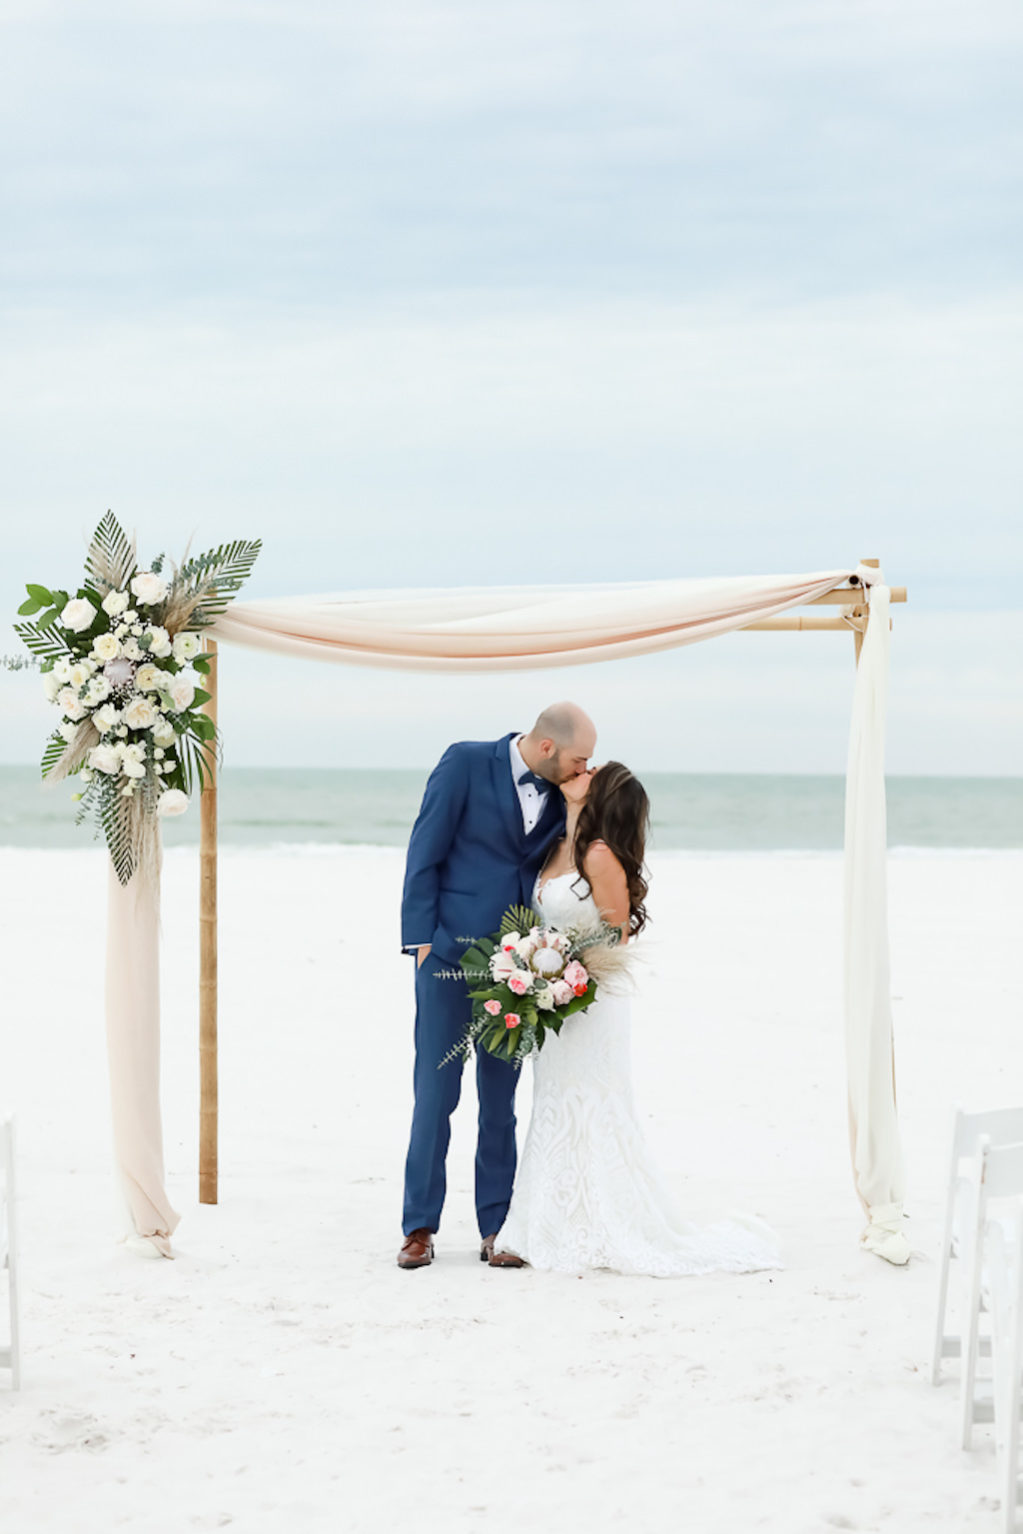 Bride and Groom Intimate Wedding Portrait on the Beach, Bamboo Bamboo Ceremony Arch with Tropical Inspired Floral Arrangement | Photographer Lifelong Photography Studios | Hilton Clearwater Beach